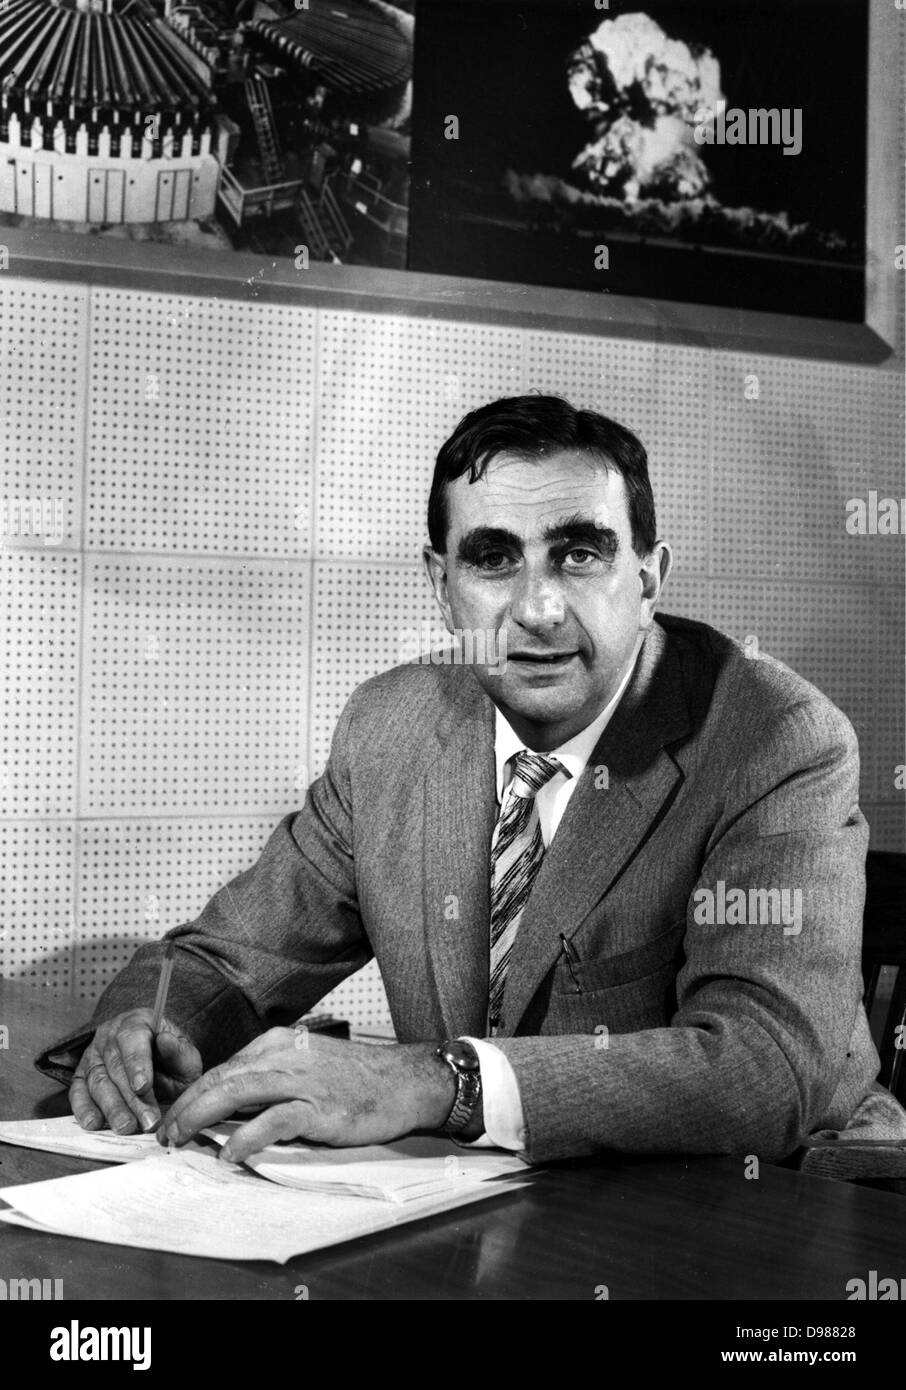 Edward Teller (January 15, 1908 – September 9, 2003) was a Hungarian-born American theoretical physicist, known - Stock Image